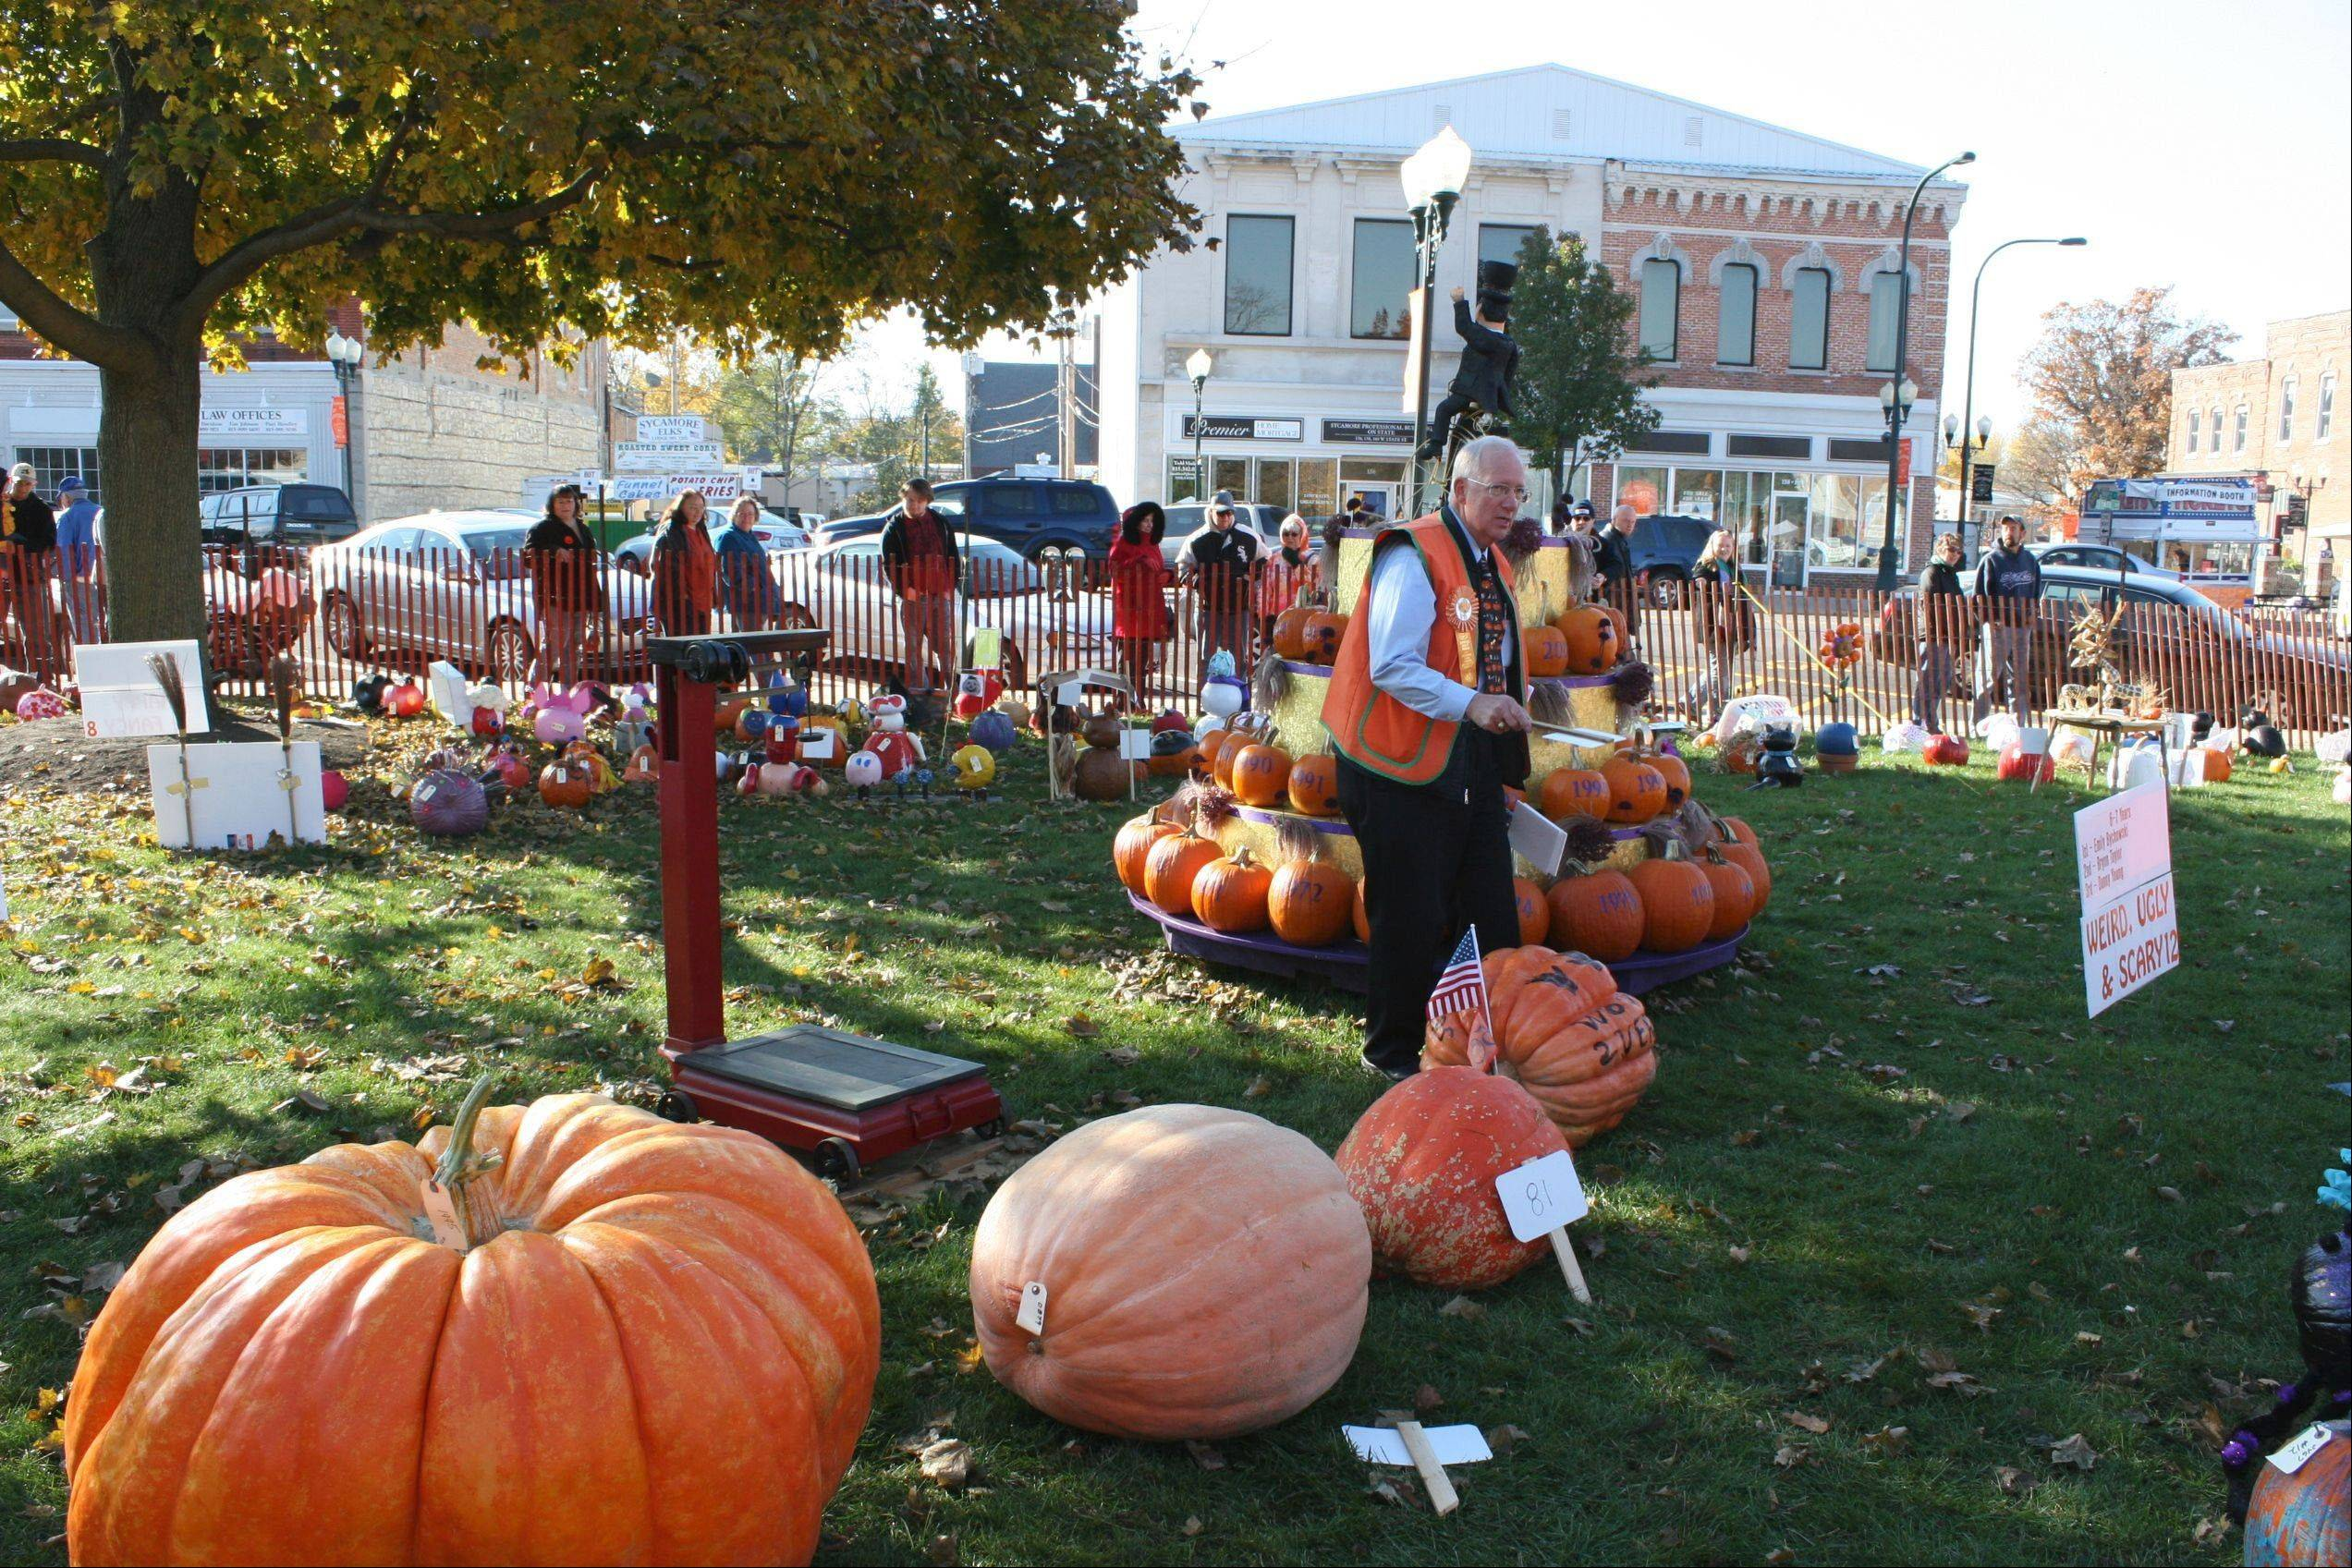 A display of decorated pumpkins are part of the fun of the Sycamore Pumpkin Festival Oct. 27-28.